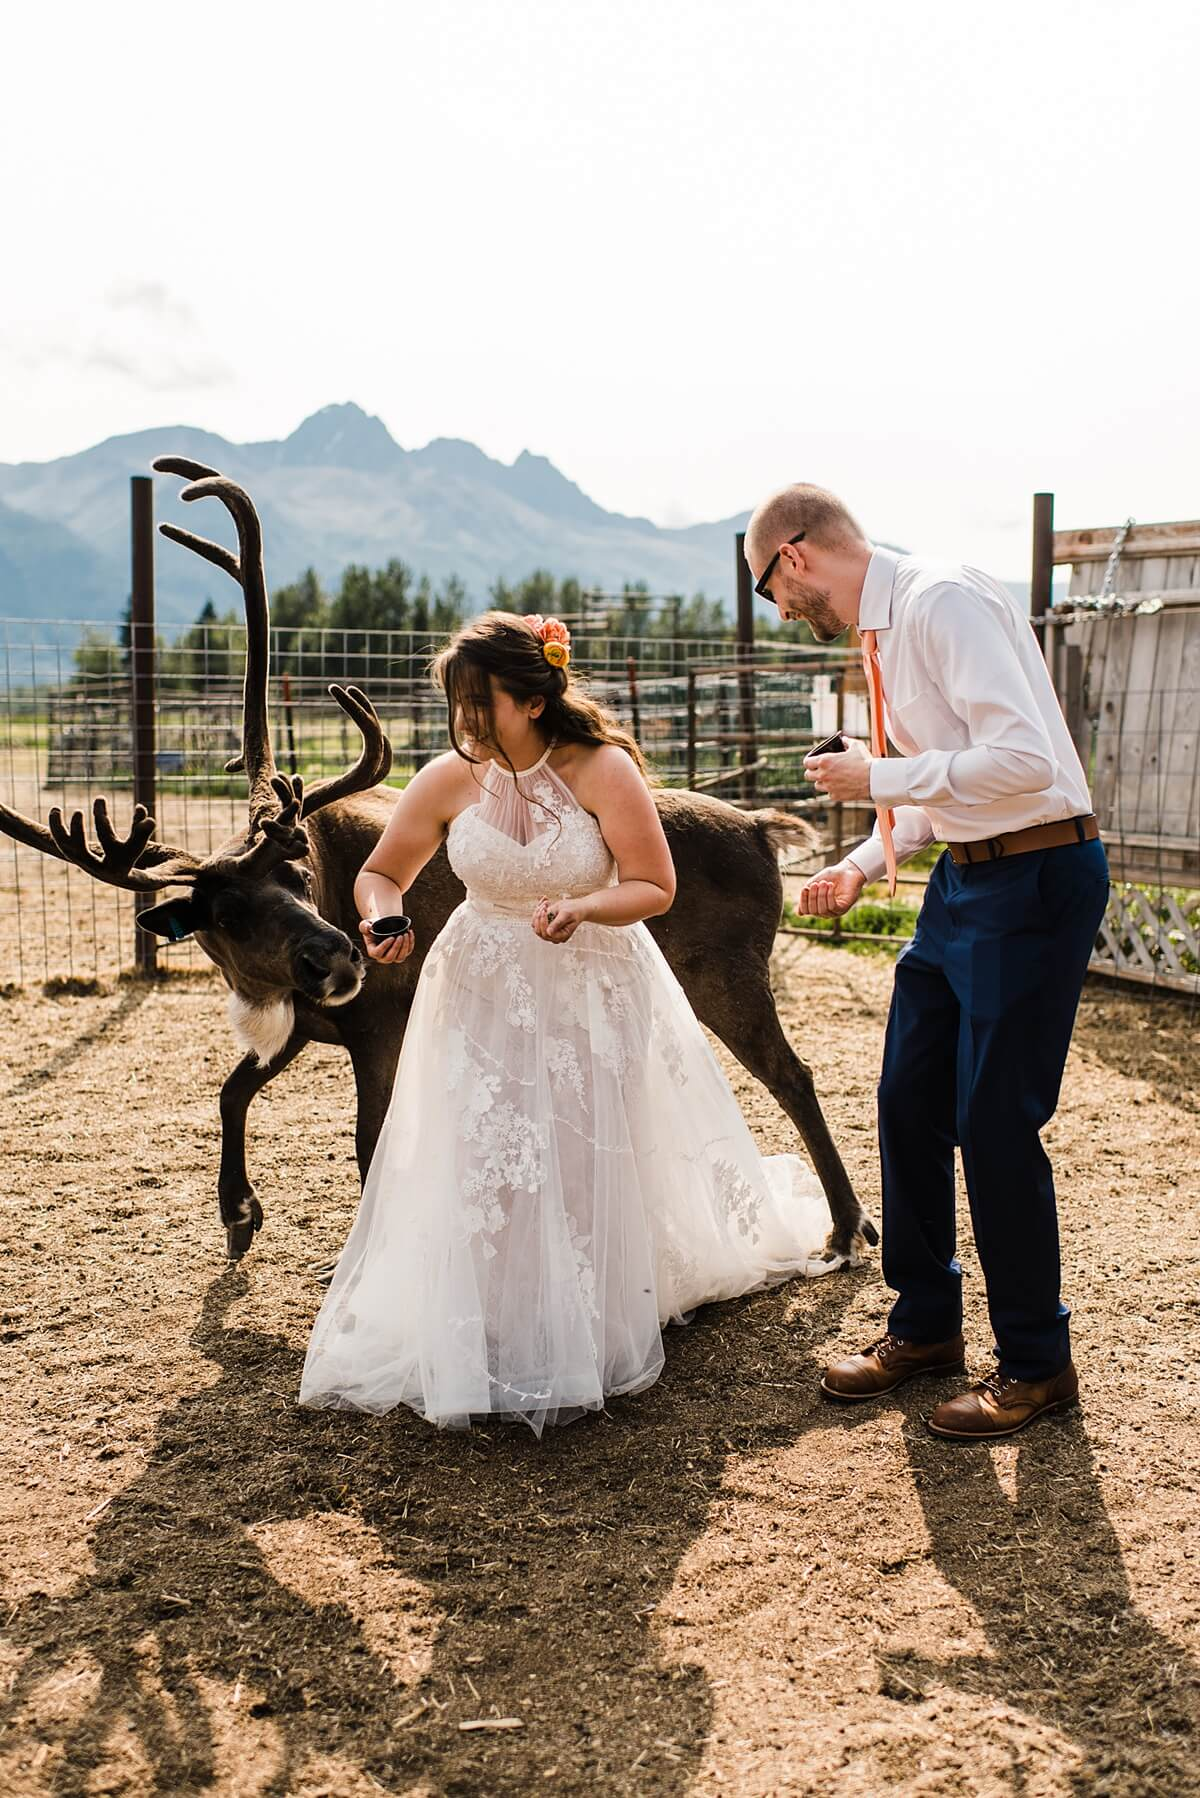 Alaska,adventure elopement,alaska adventure elopement photographer,anchorage,elope your life,hatcher pass,reindeer farm,sam starns,